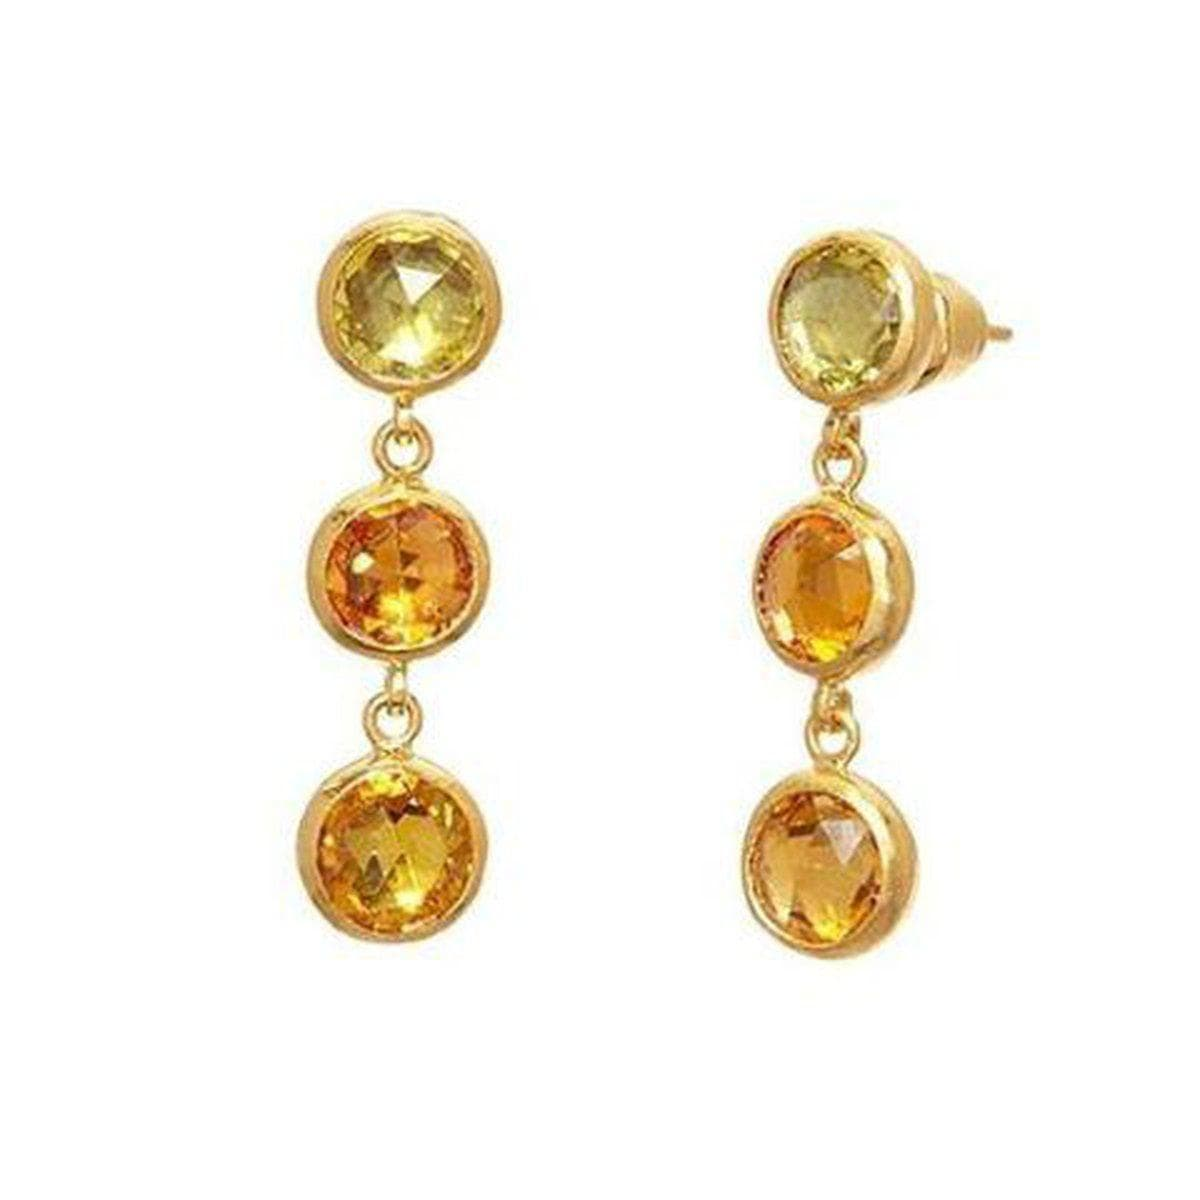 Elements 24K Gold Sapphire Mix Earrings - E-U23632-FSA